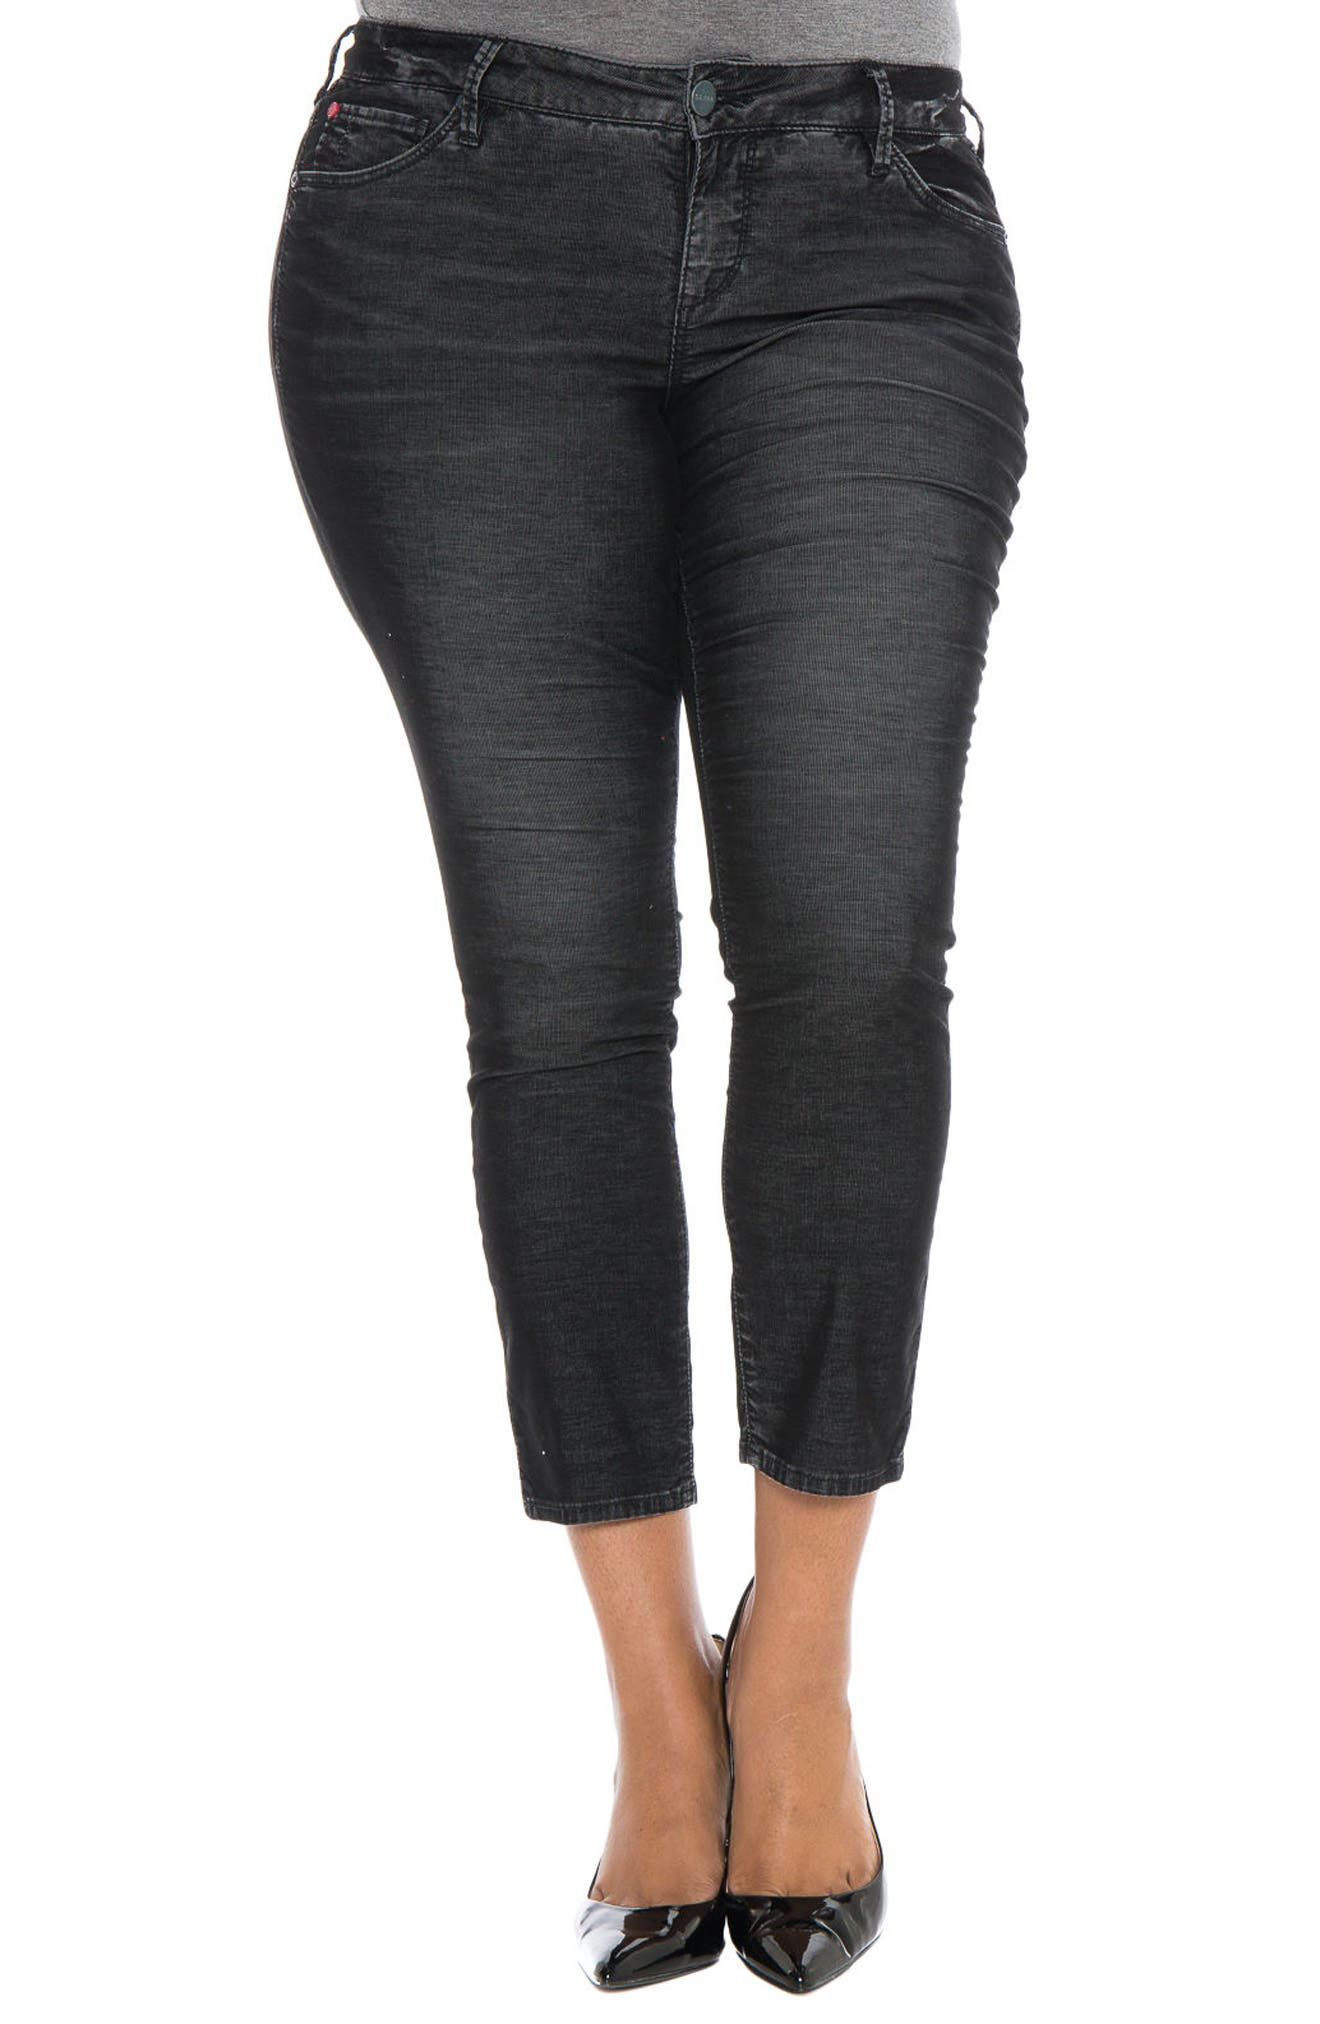 Alternate Image 1 Selected - SLINK Jeans Stretch Corduroy Cropped Skinny Pants (Plus Size)